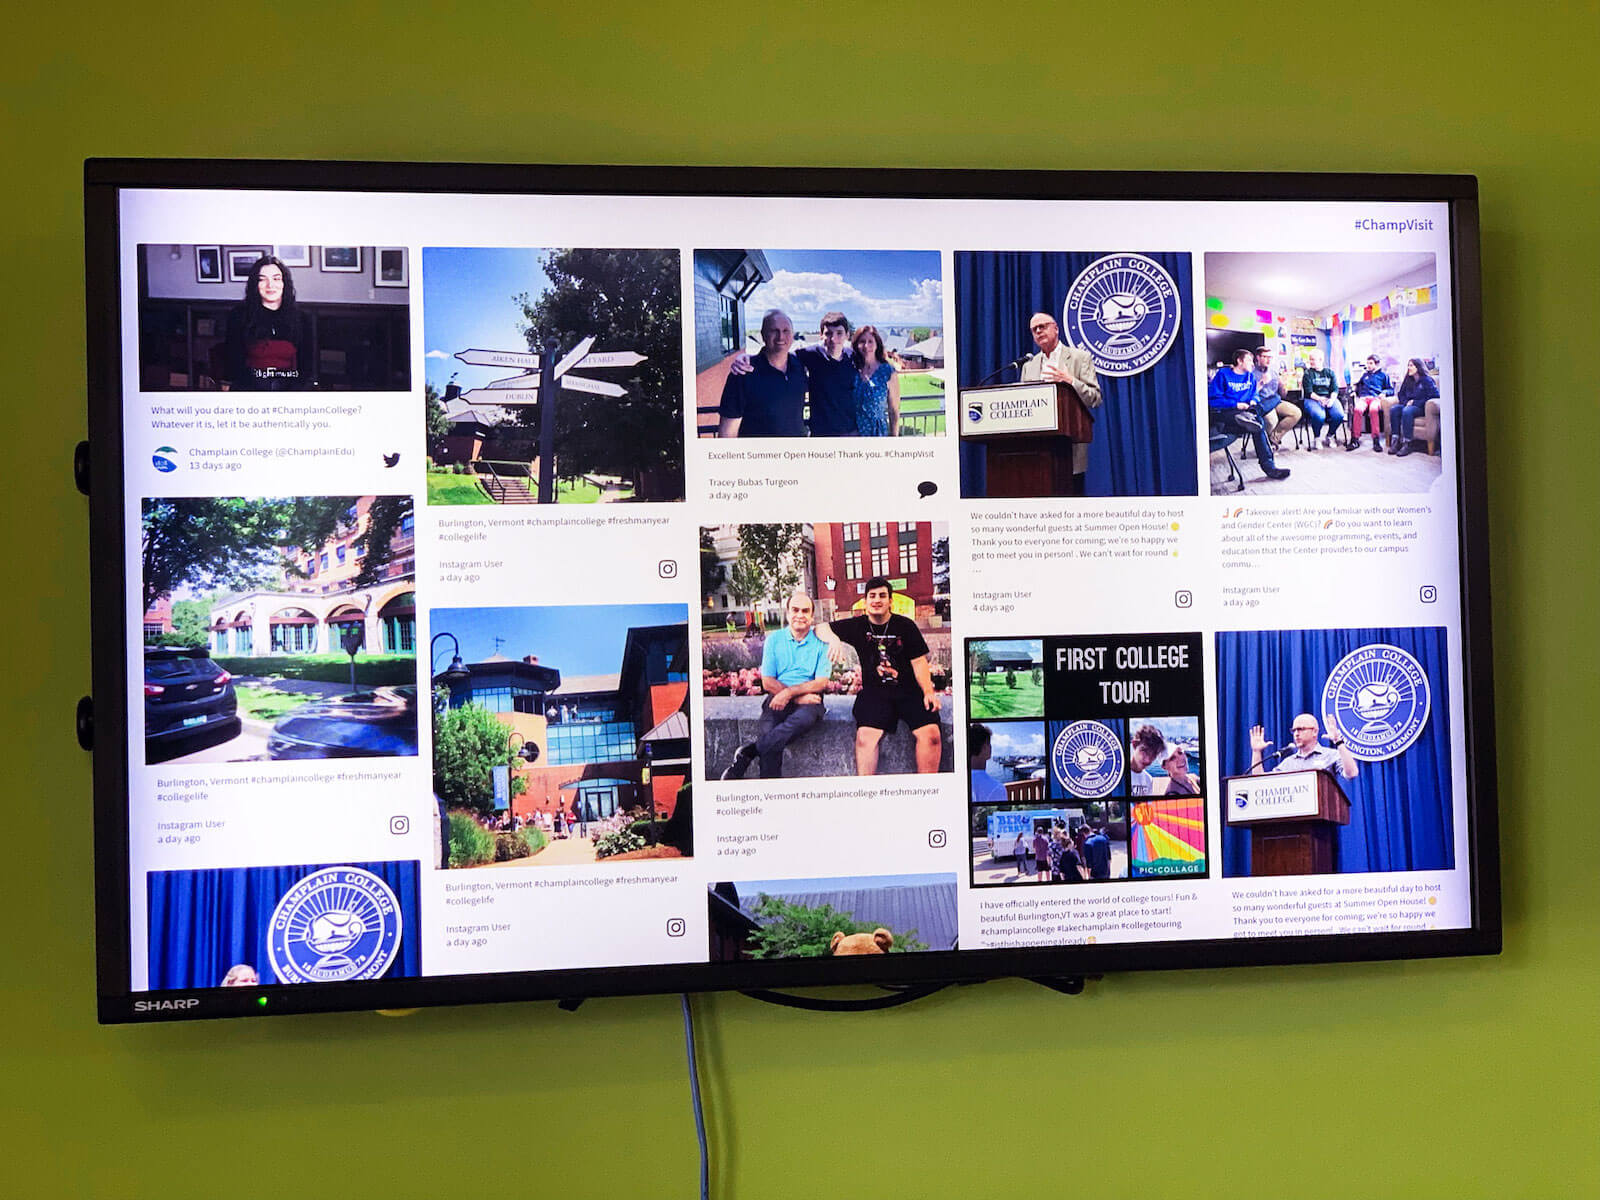 The #ChampVisit social wall shown on a digital signage screen affixed to a green wall.